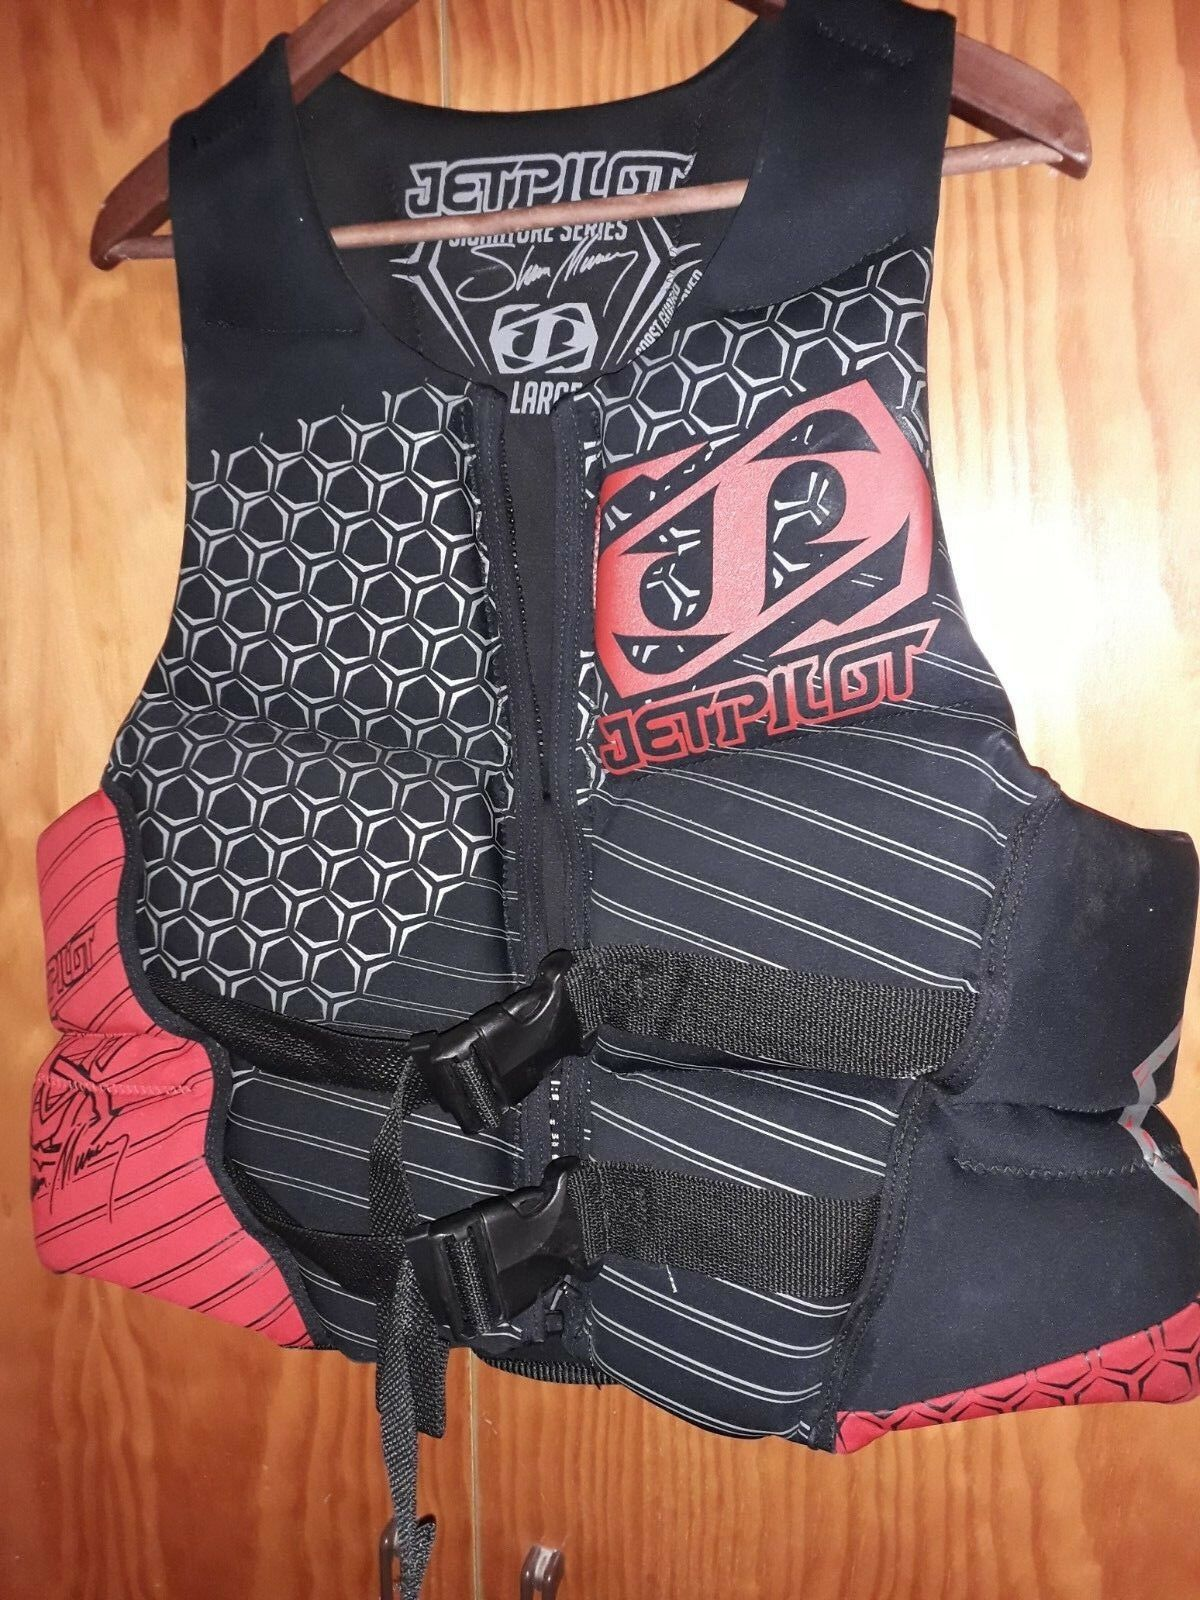 NEW Jet Pilot Signature Series US COST GUARD XL Life Jacket Chaqueta Salvavidas